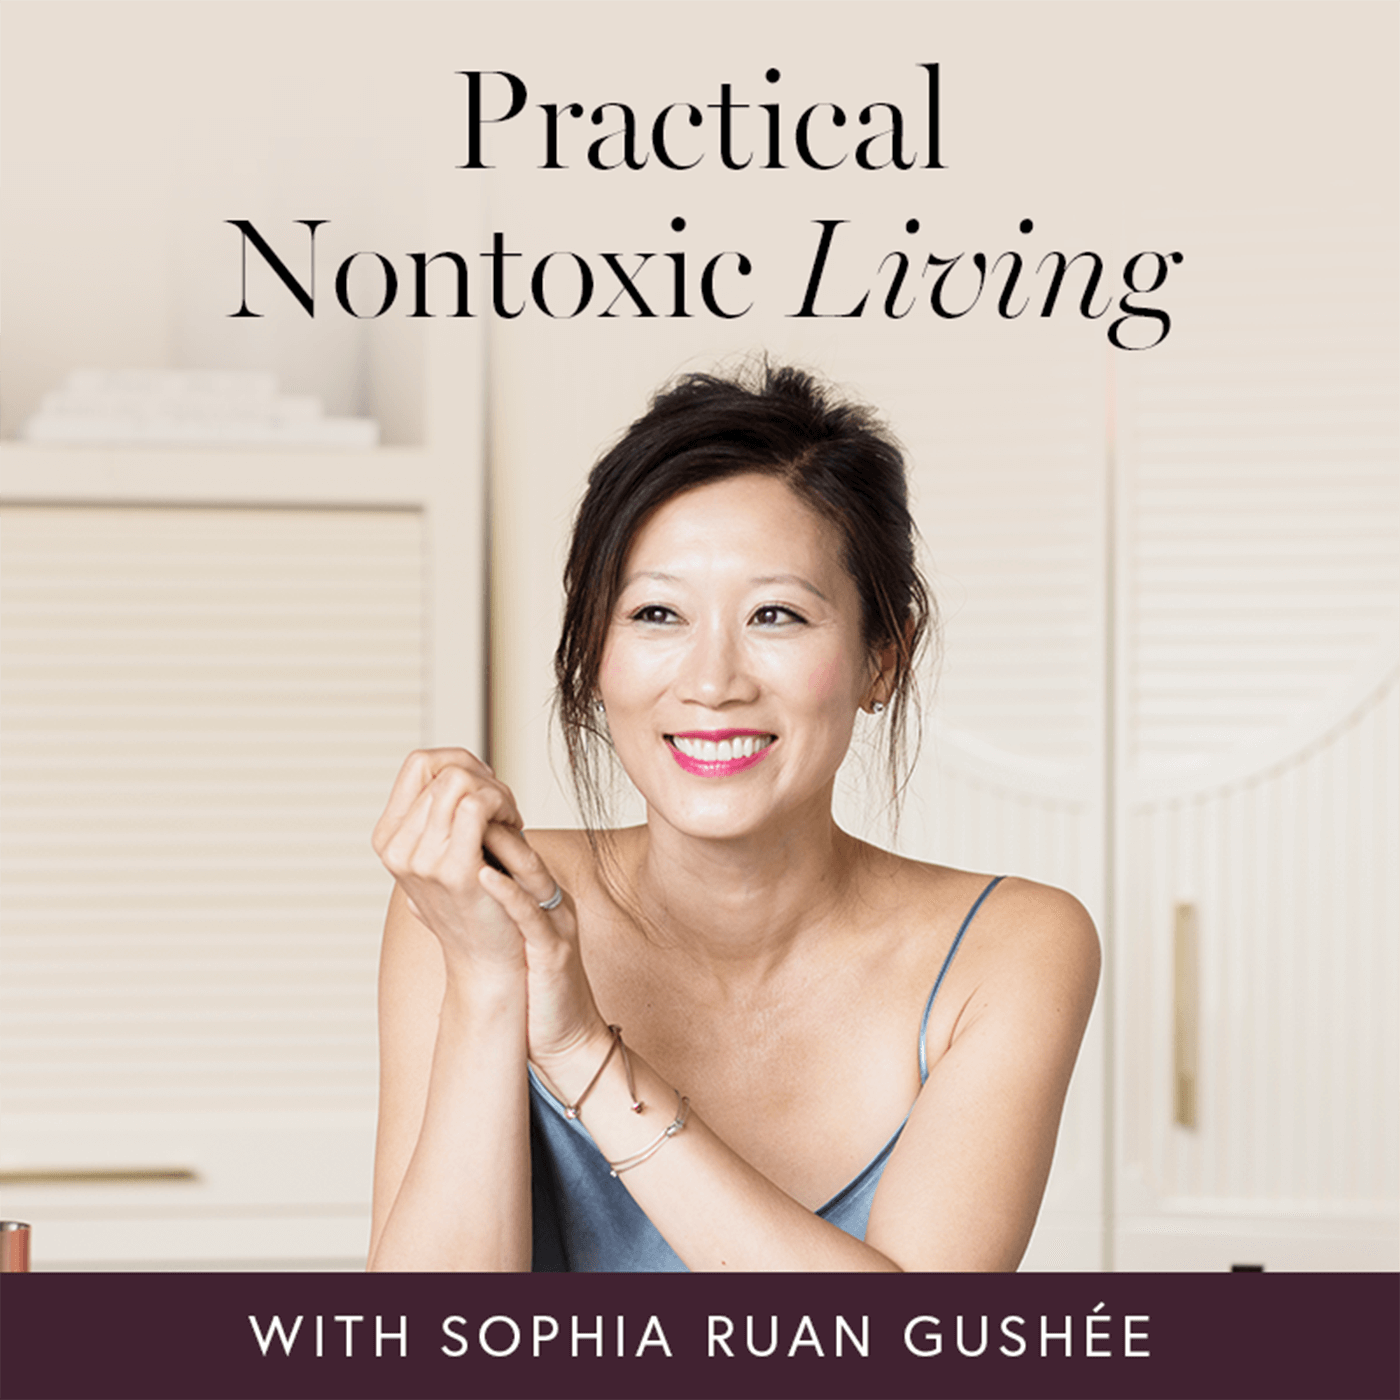 20. Indoor Air Quality: Q&A from Practical Nontoxic Living Podcast Listeners